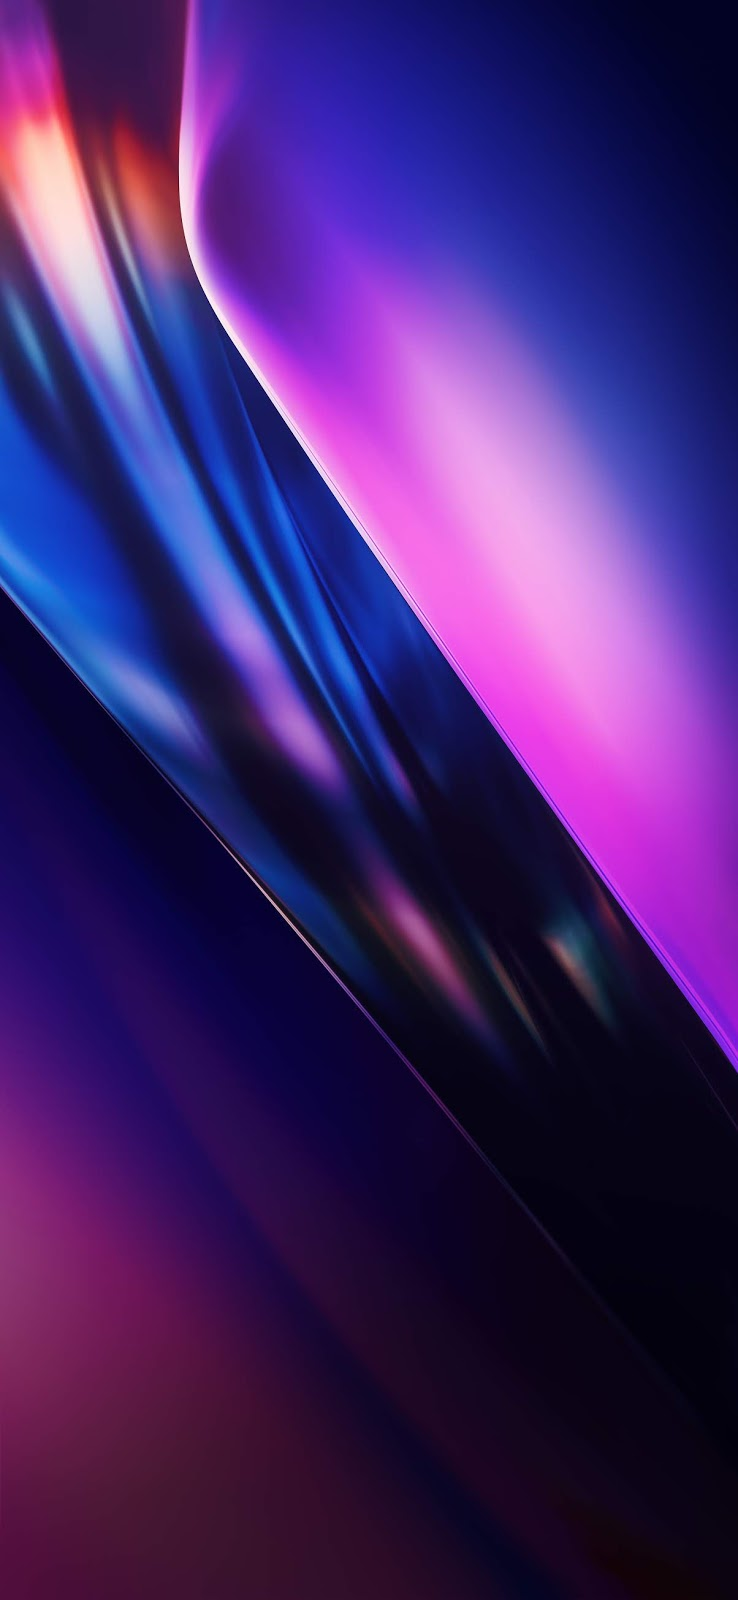 Gradient abstract